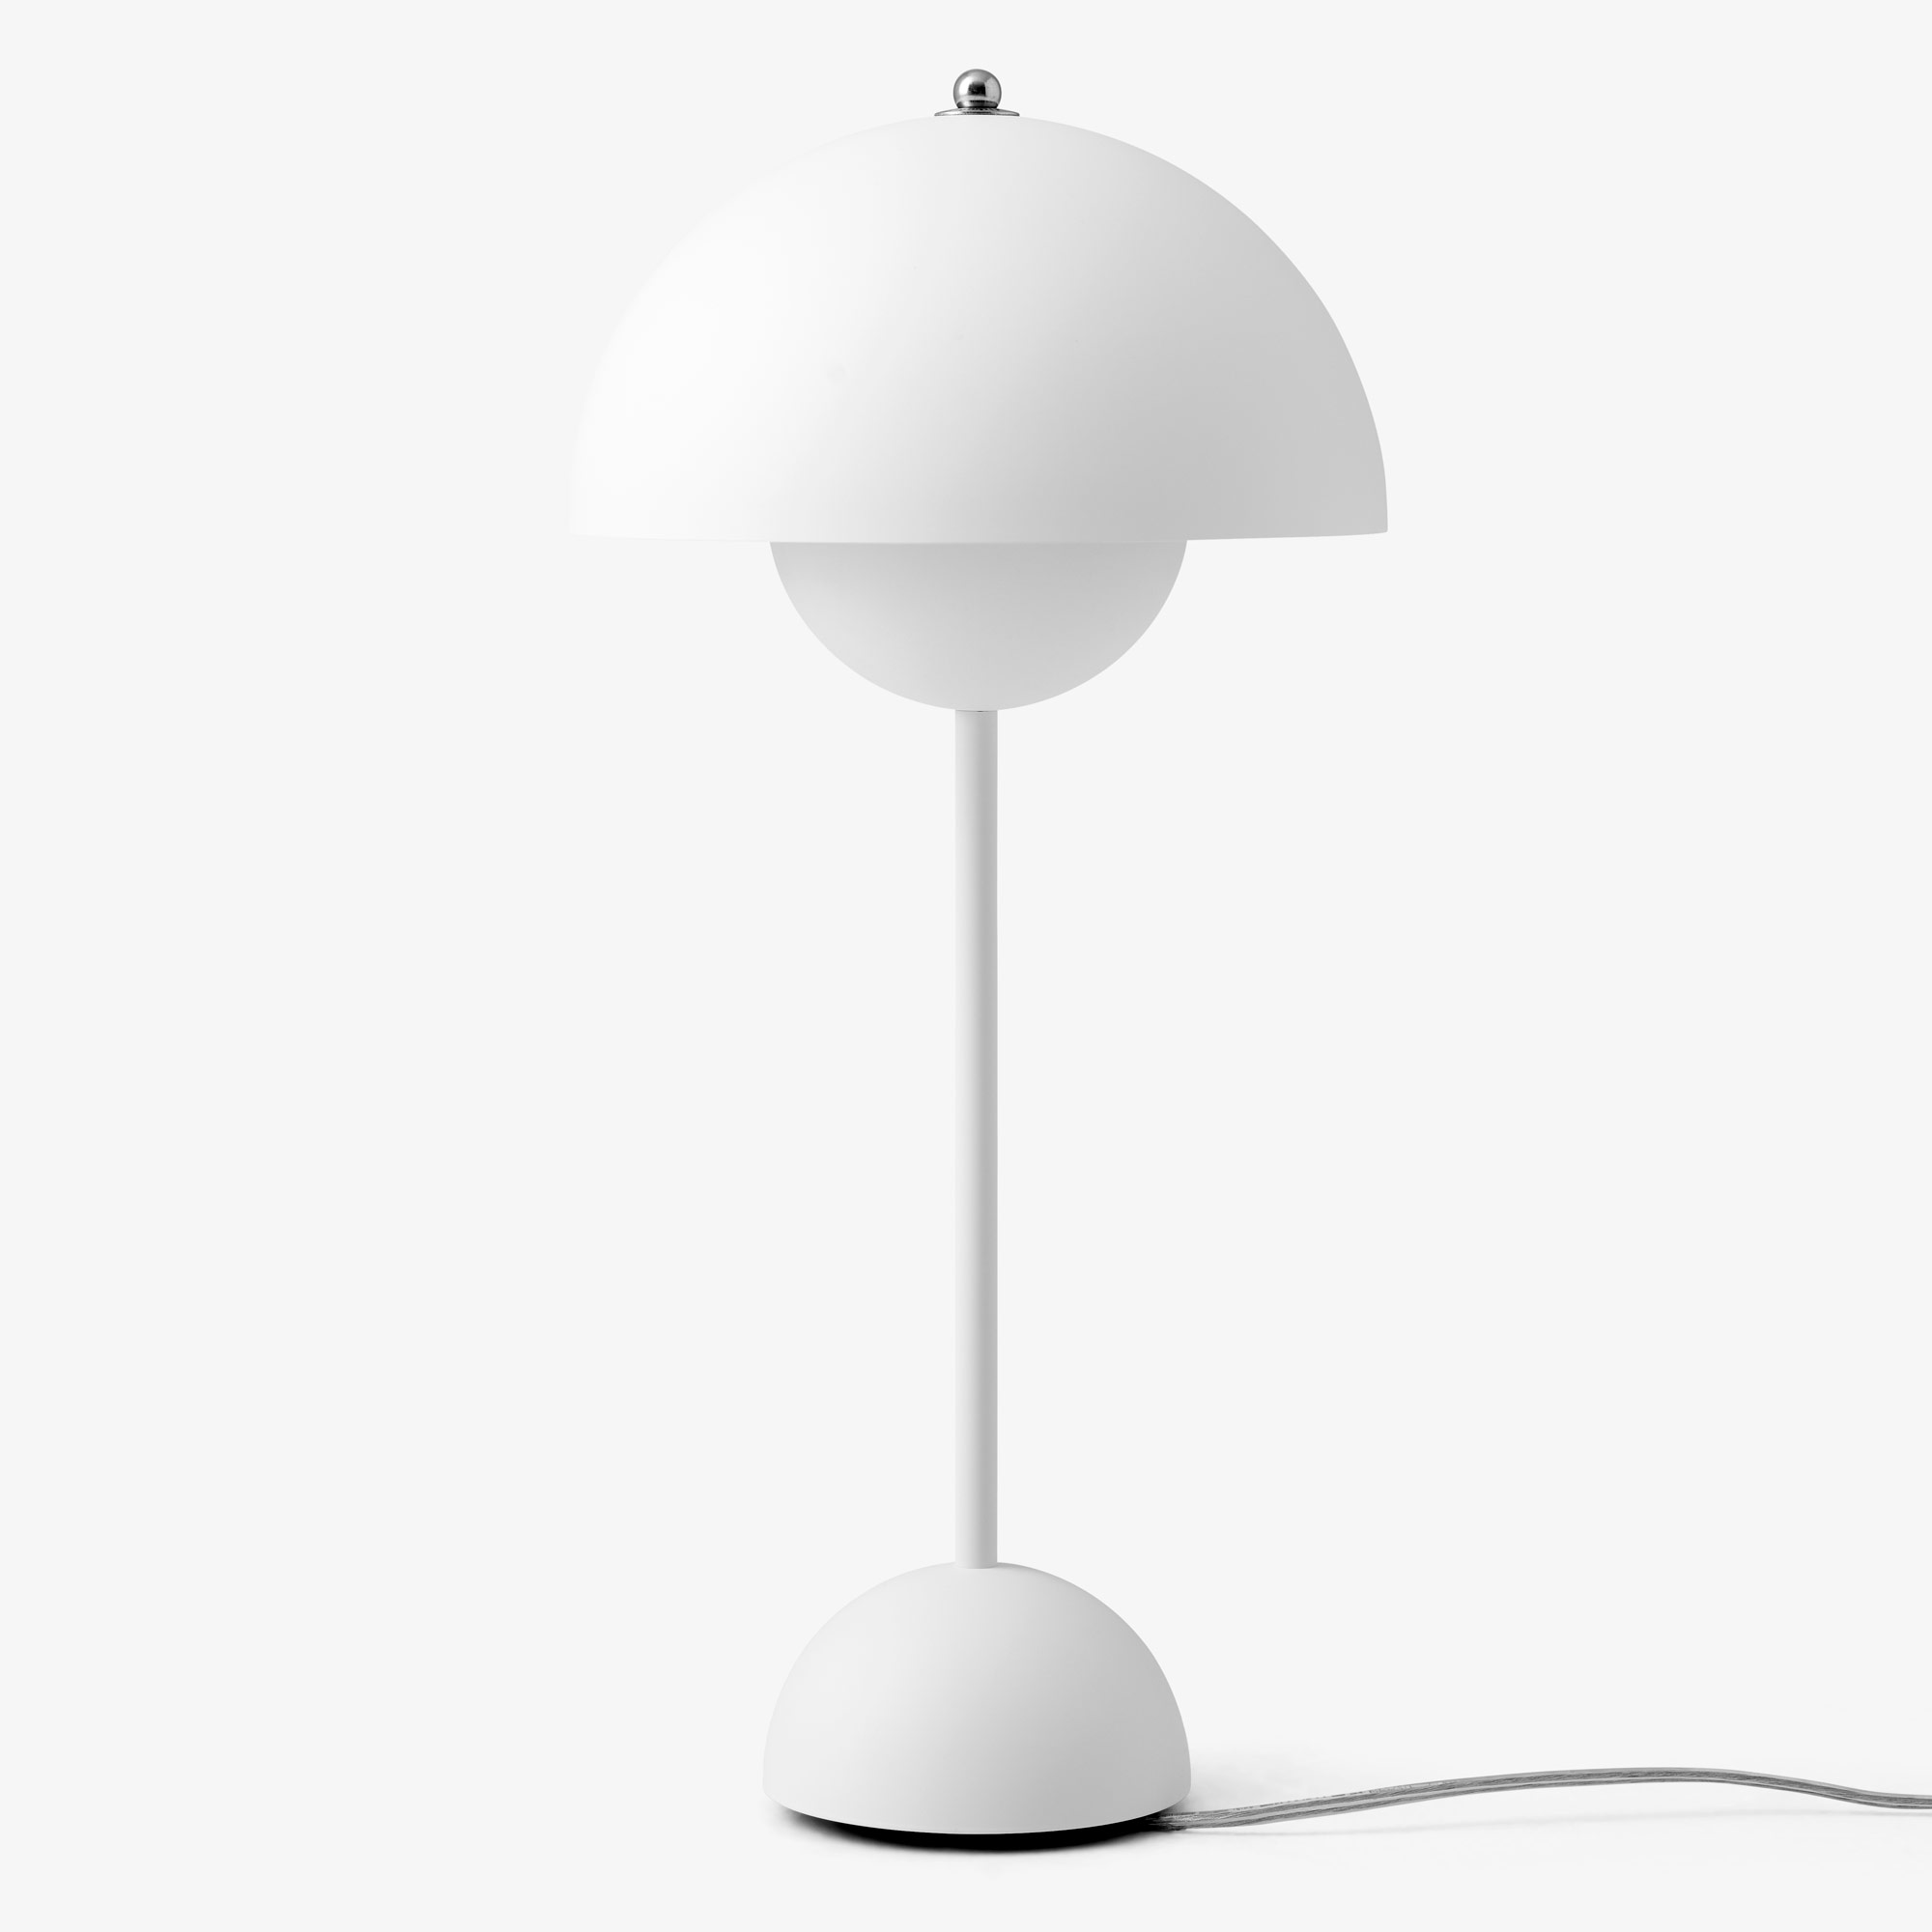 Picture of: Flowerpot Vp3 Table Lamp By Tradition At 20723101